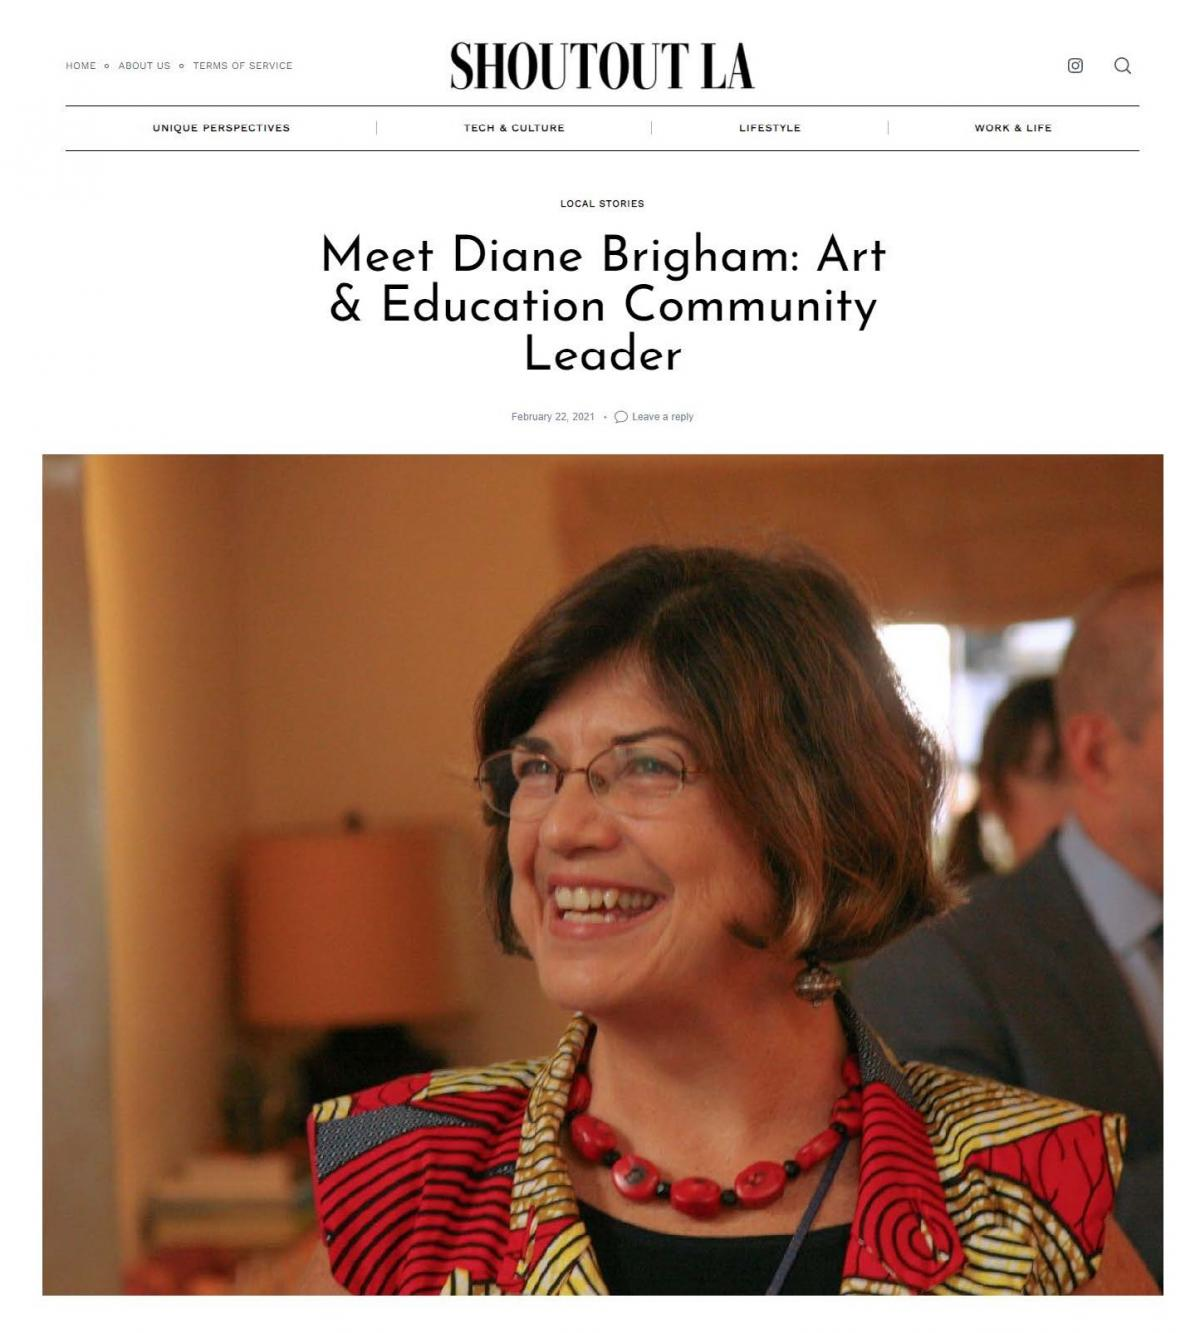 Shout Out LA: Meet Diane Brigham: Art & Education Community Leader